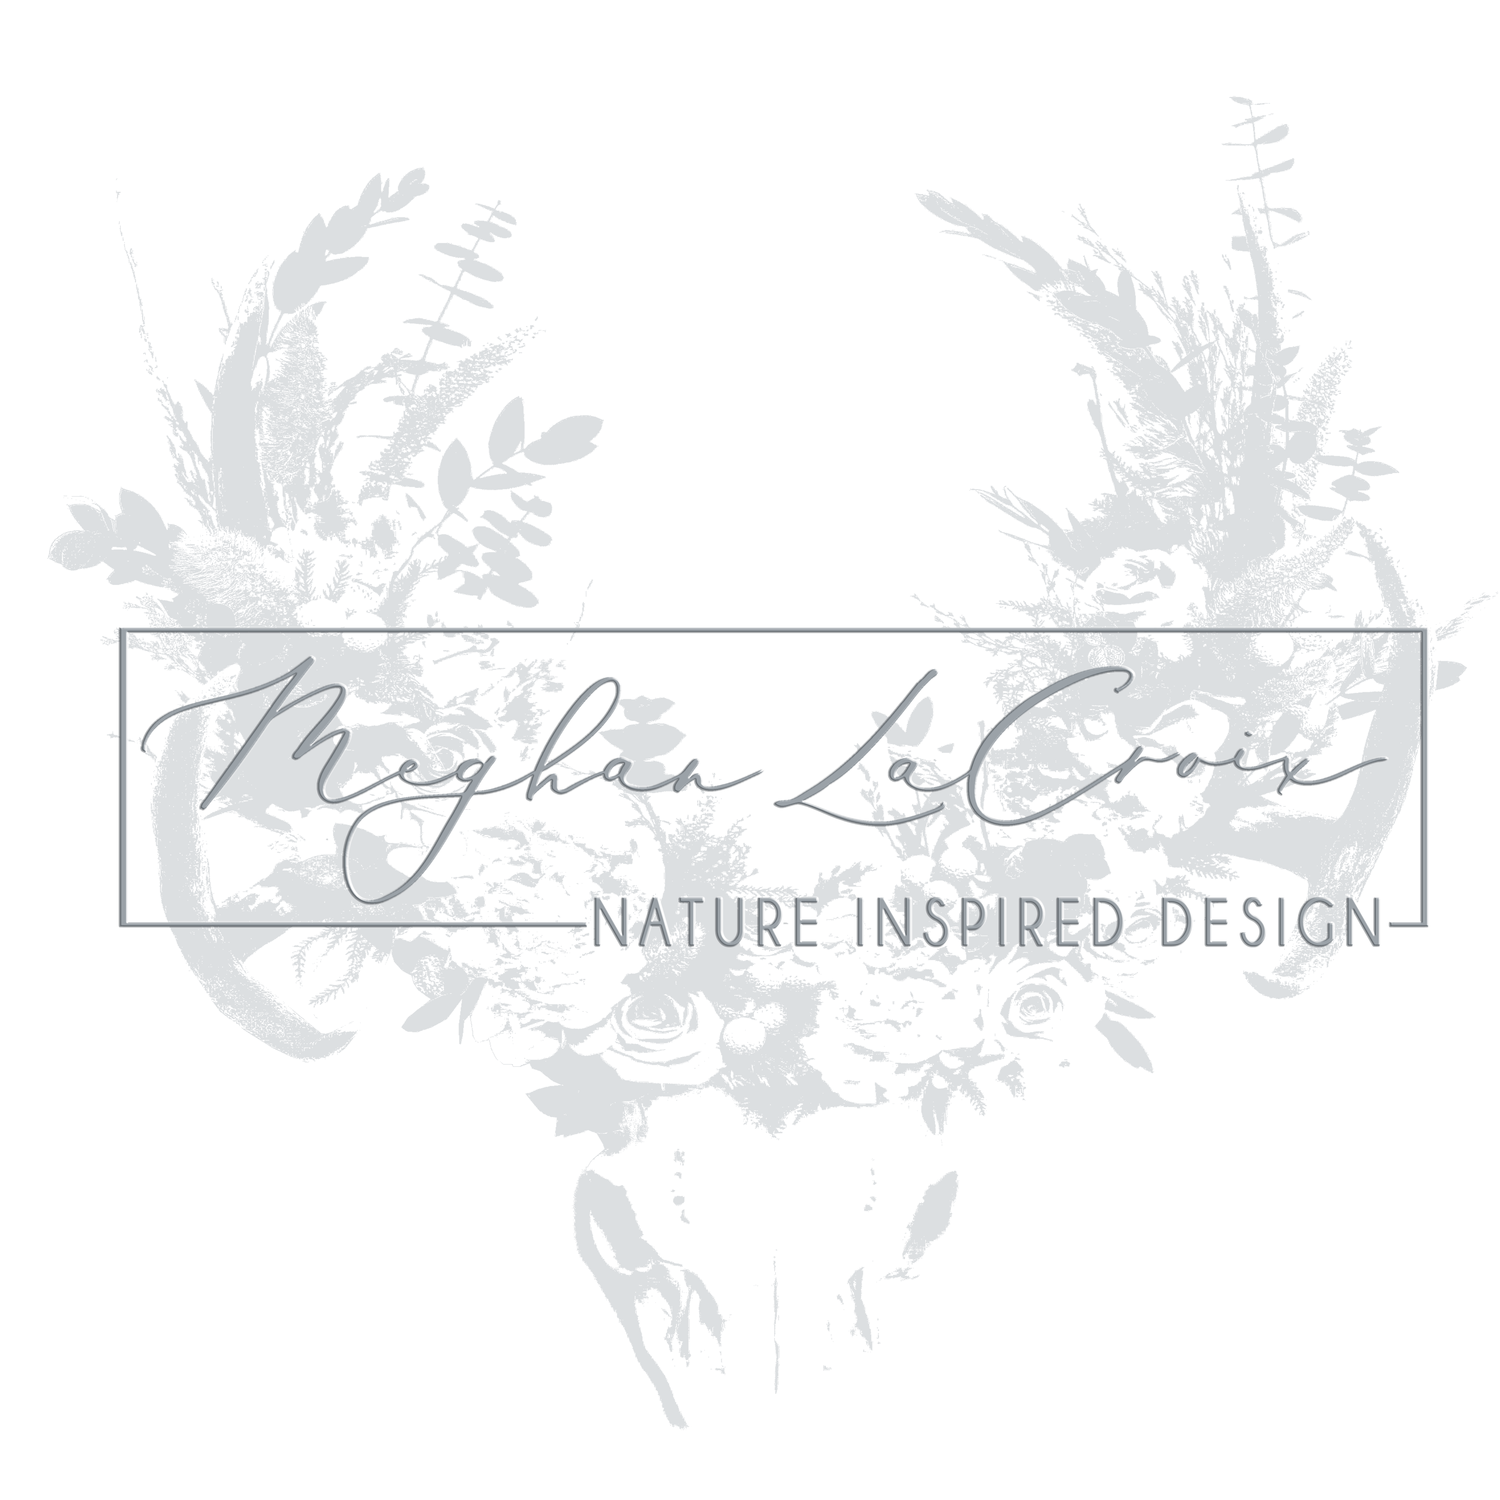 Meghan LaCroix - Nature Inspired Design